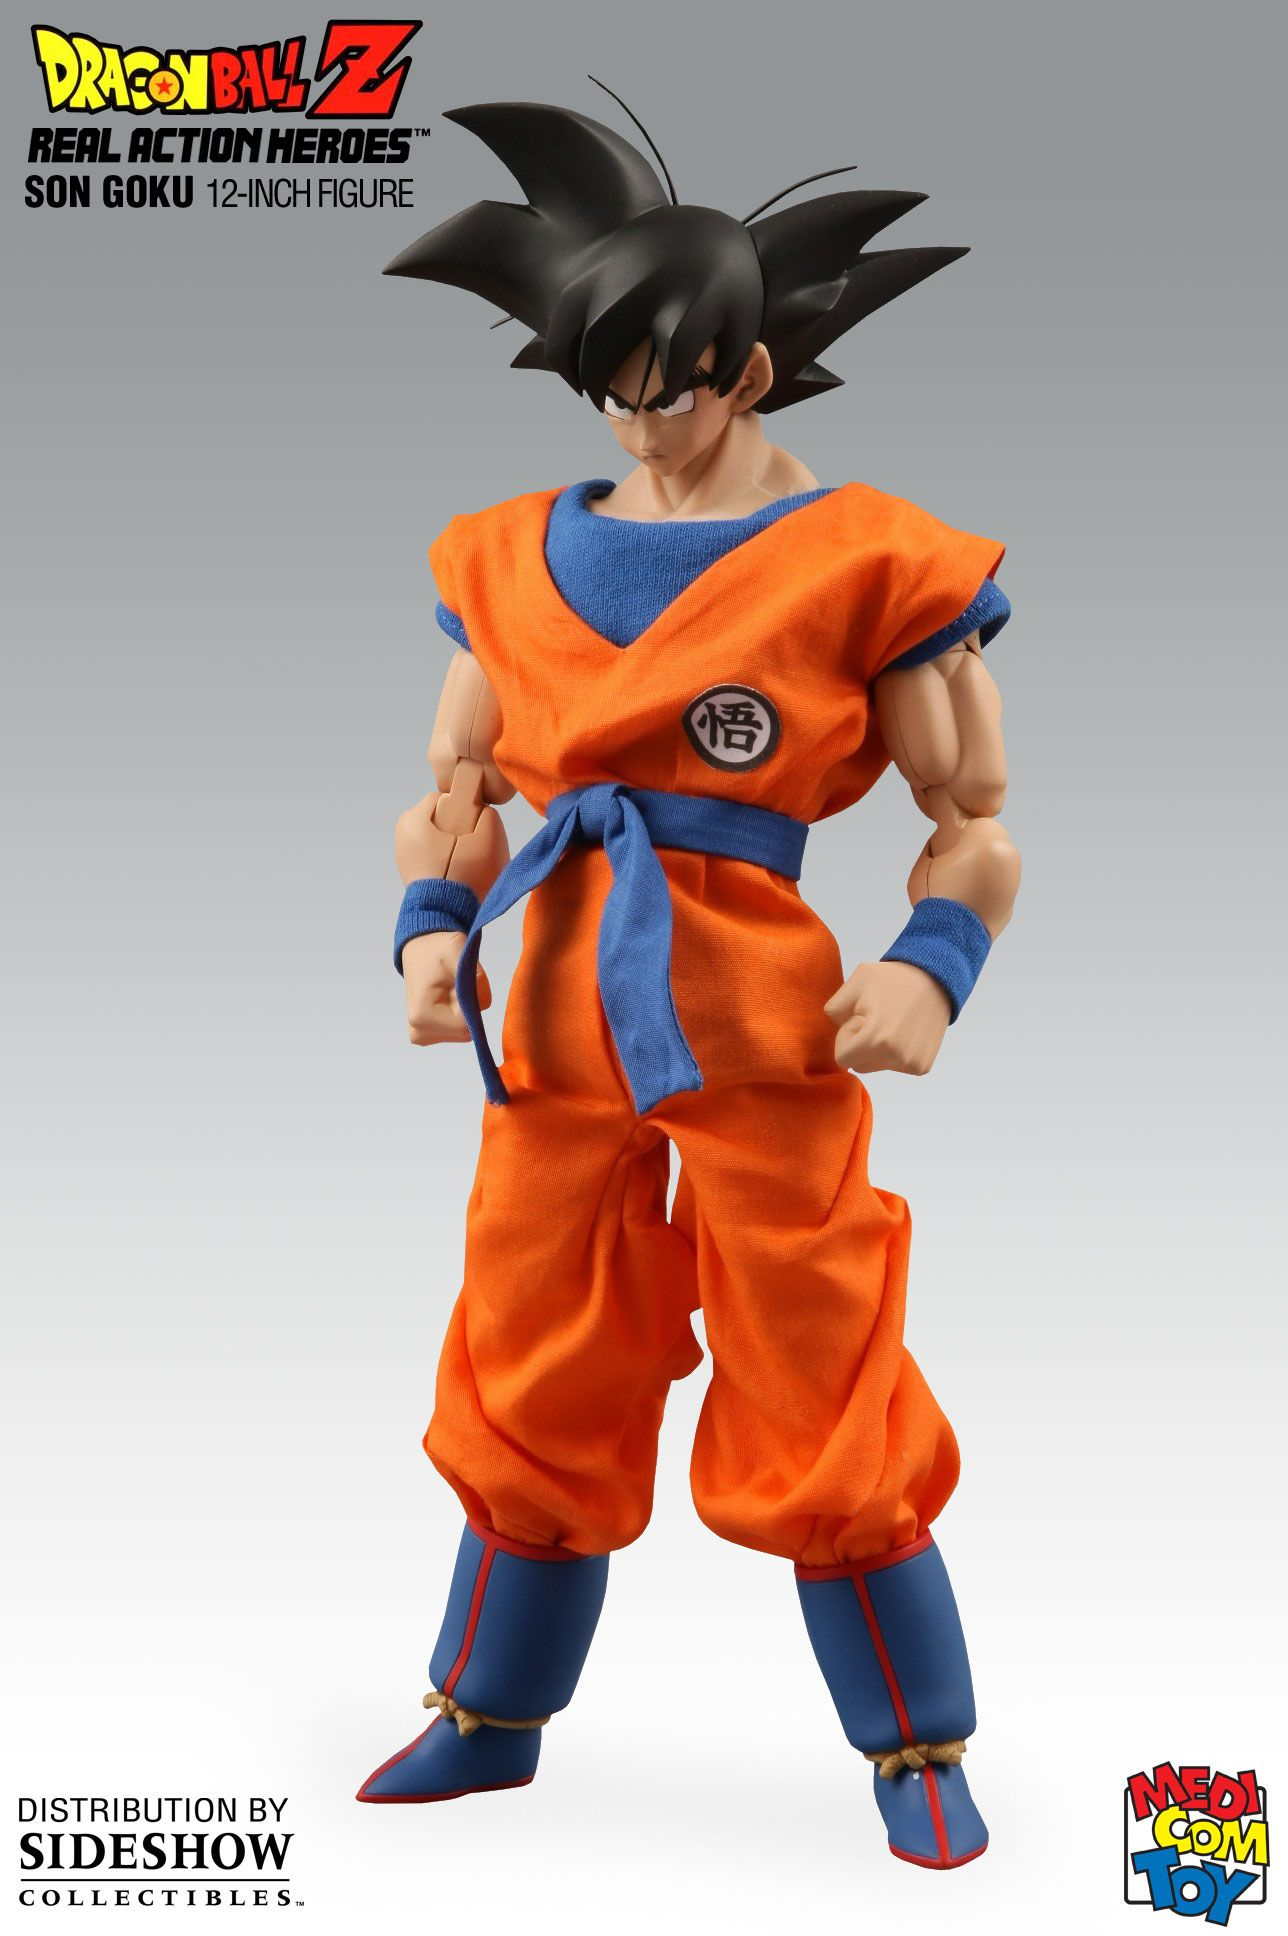 Toys & Hobbies Popular Brand 18cm Box Figuarts Zero Super Saiyan 3 Son Goku Pvc Action Figures Dragon Ball Z Collection Model Dbz Esferas Del Dragon Toy Suitable For Men And Women Of All Ages In All Seasons